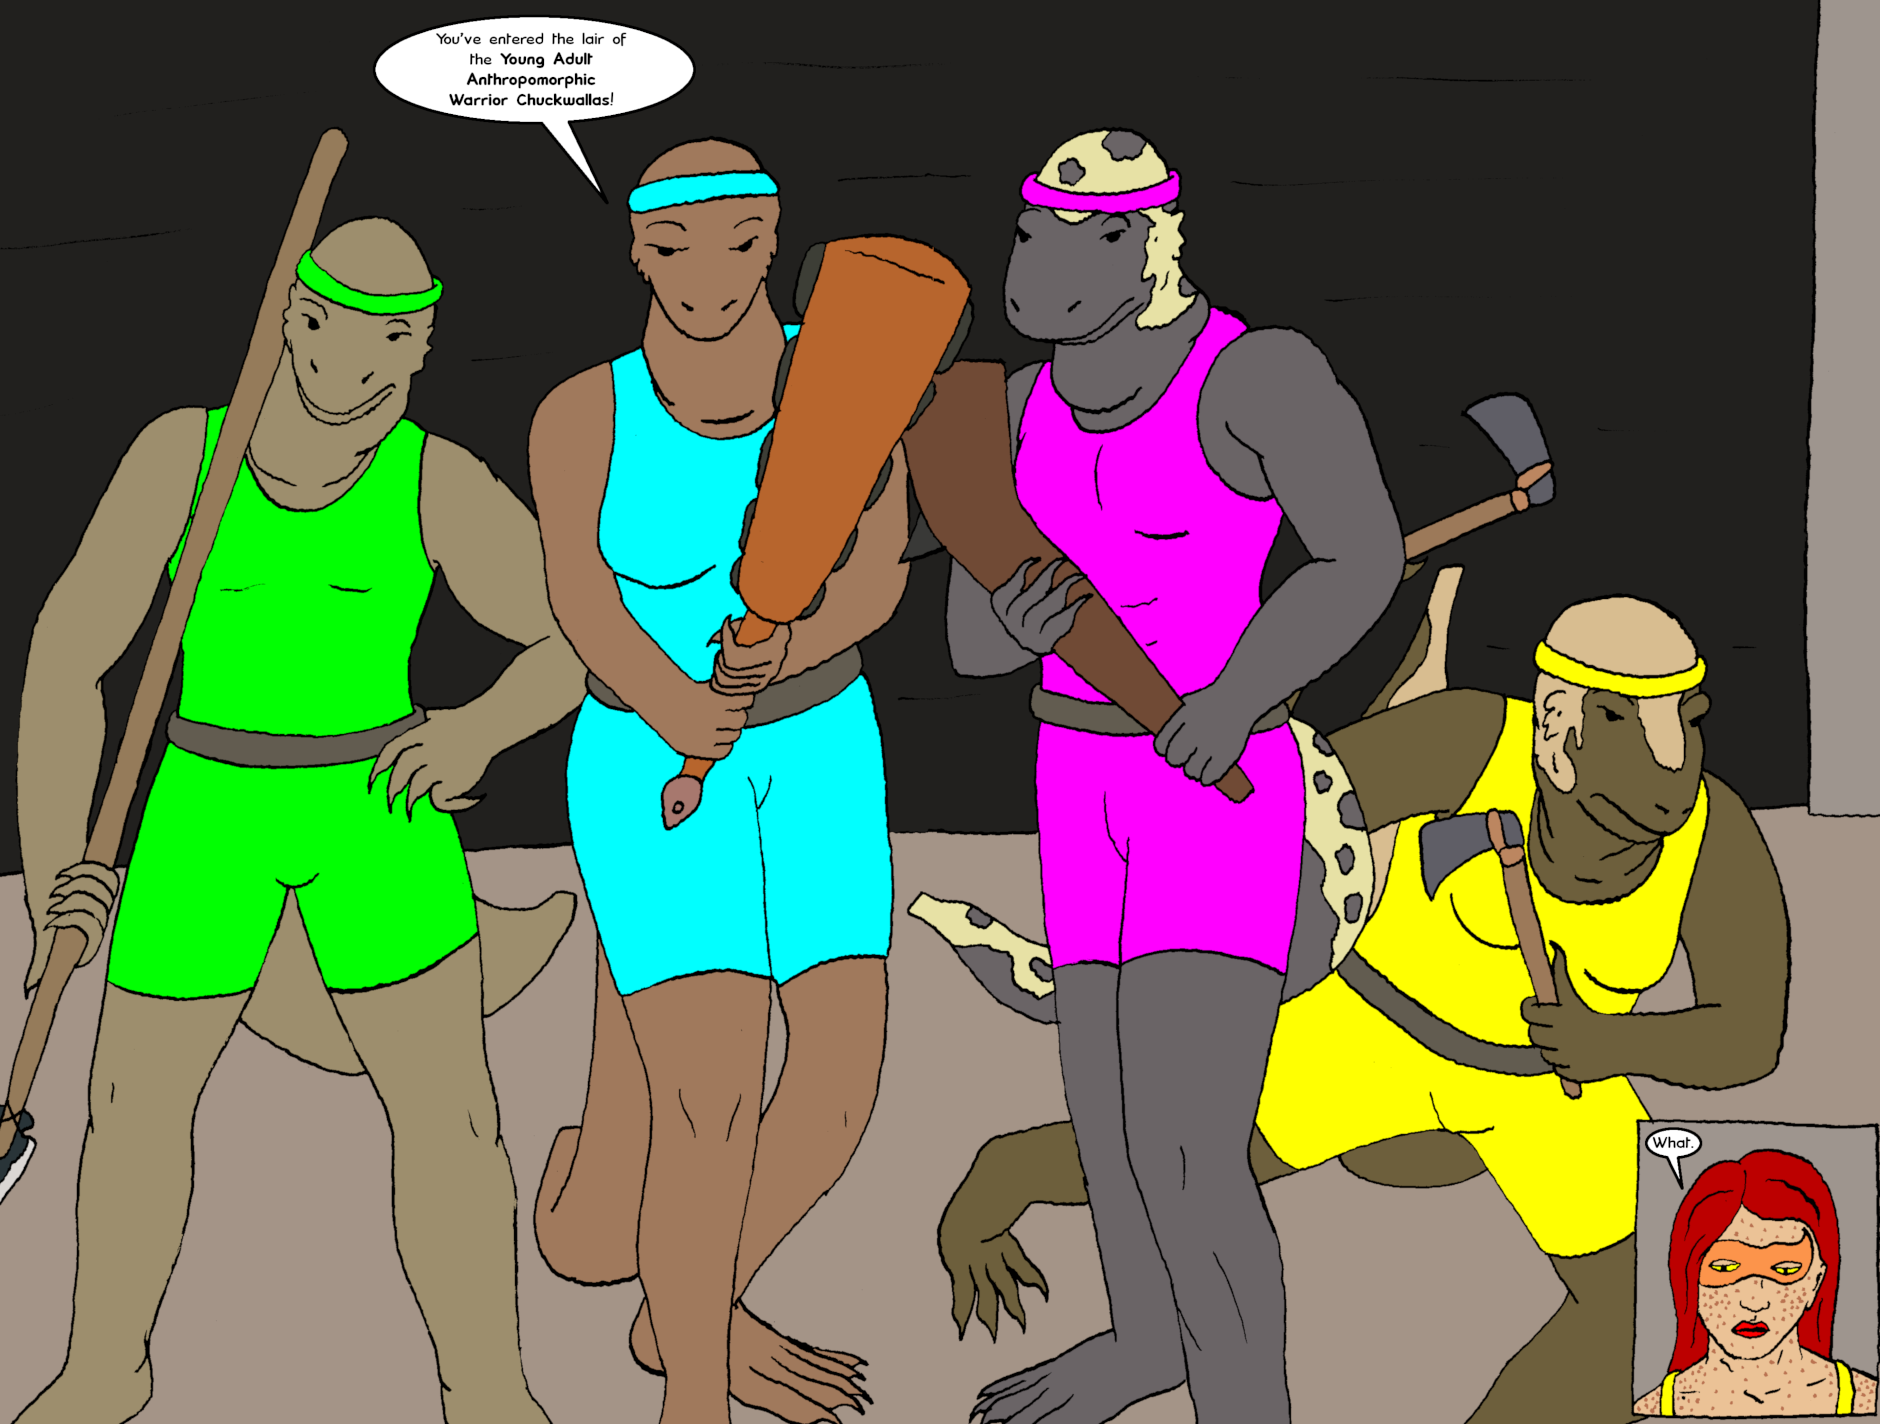 Issue 8: Young Adult Anthropomorphic Warrior Chuckwallas - Pages 4-5